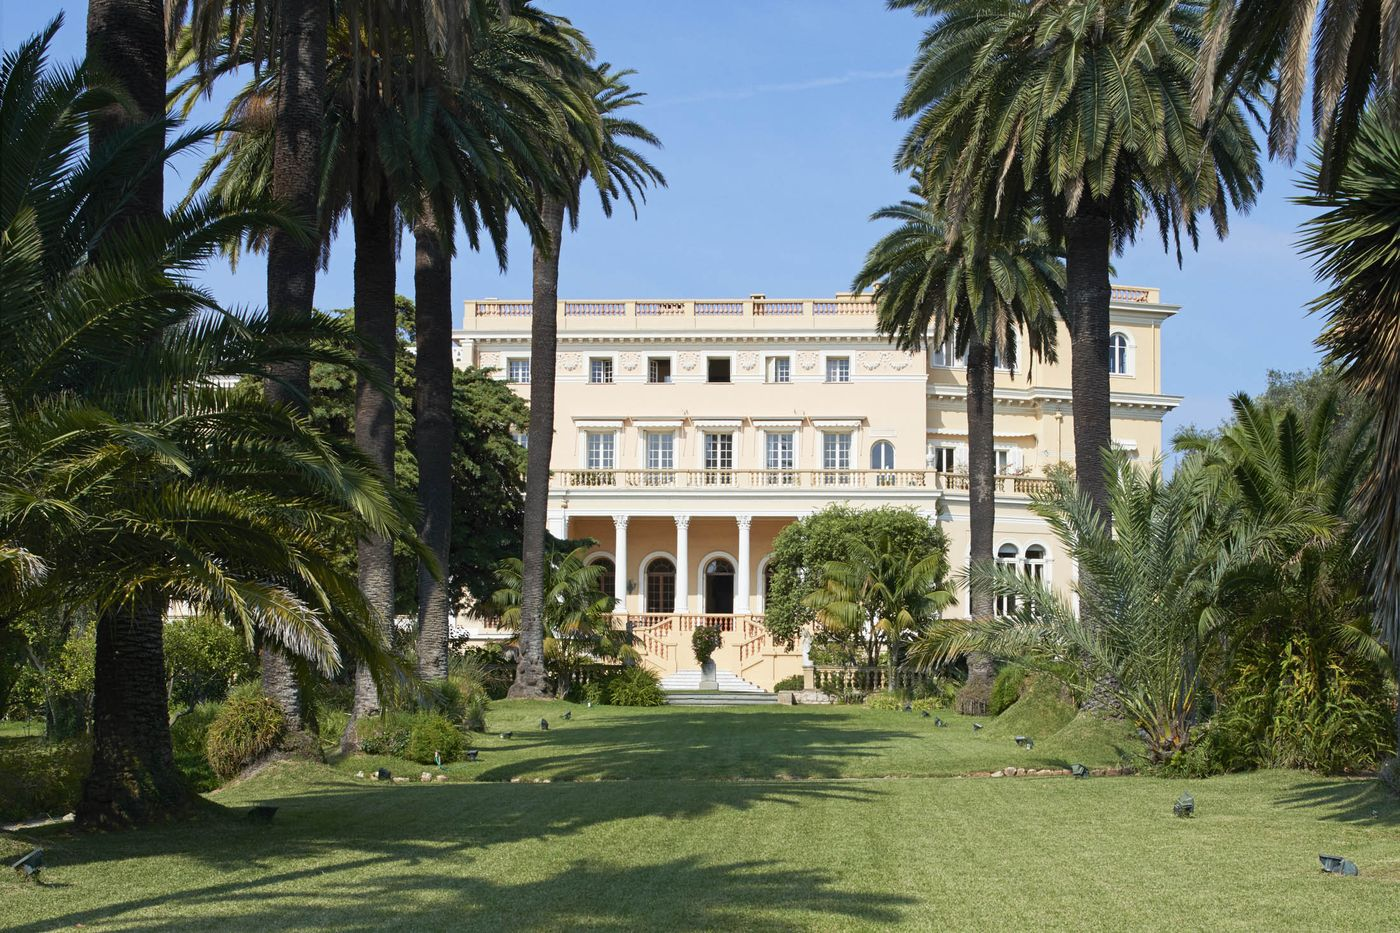 Worlds Most Expensive Home For Sale Wants 413M